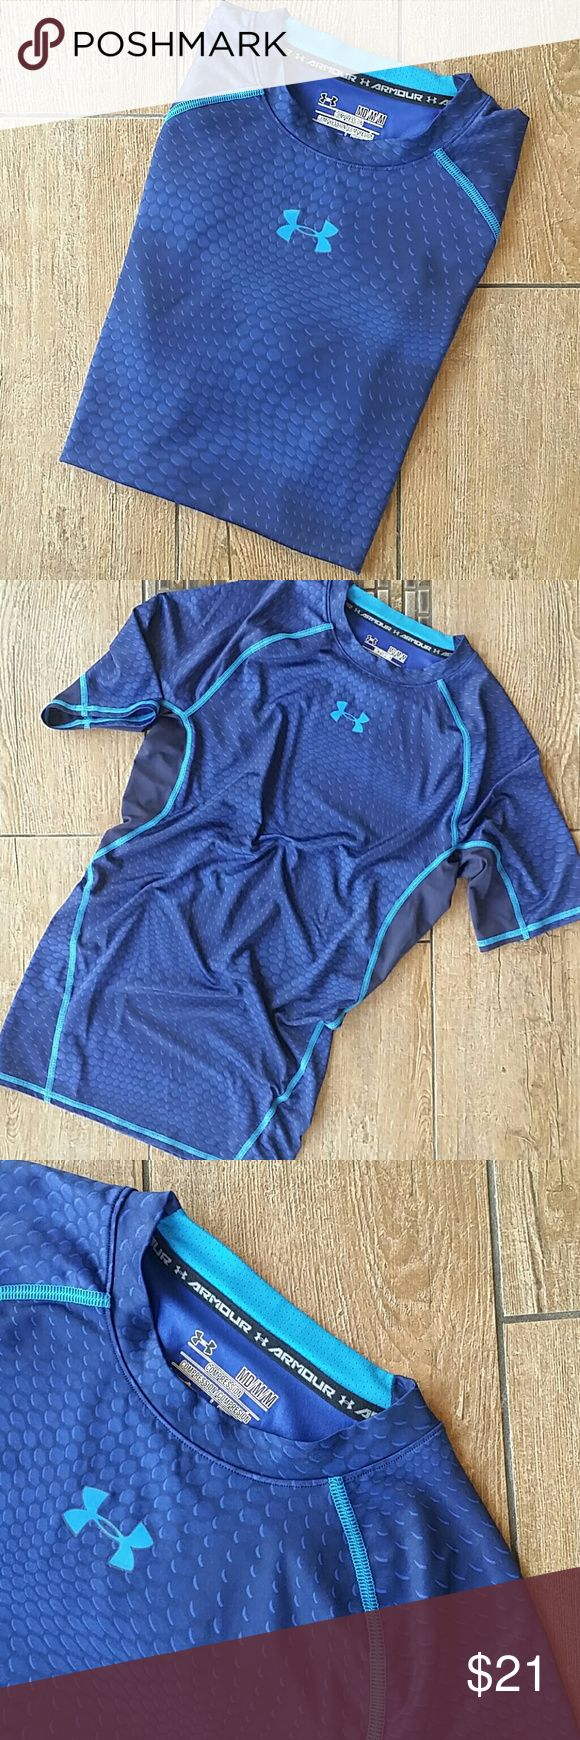 UNDER ARMOUR COMPRESSION SHIRT Royal blue/aqua/navy blue Crew neck Short sleeve Navy mesh underarm and down side No rips, stains, snags or peeling of logos Smoke free home Under Armour Shirts Tees - Short Sleeve